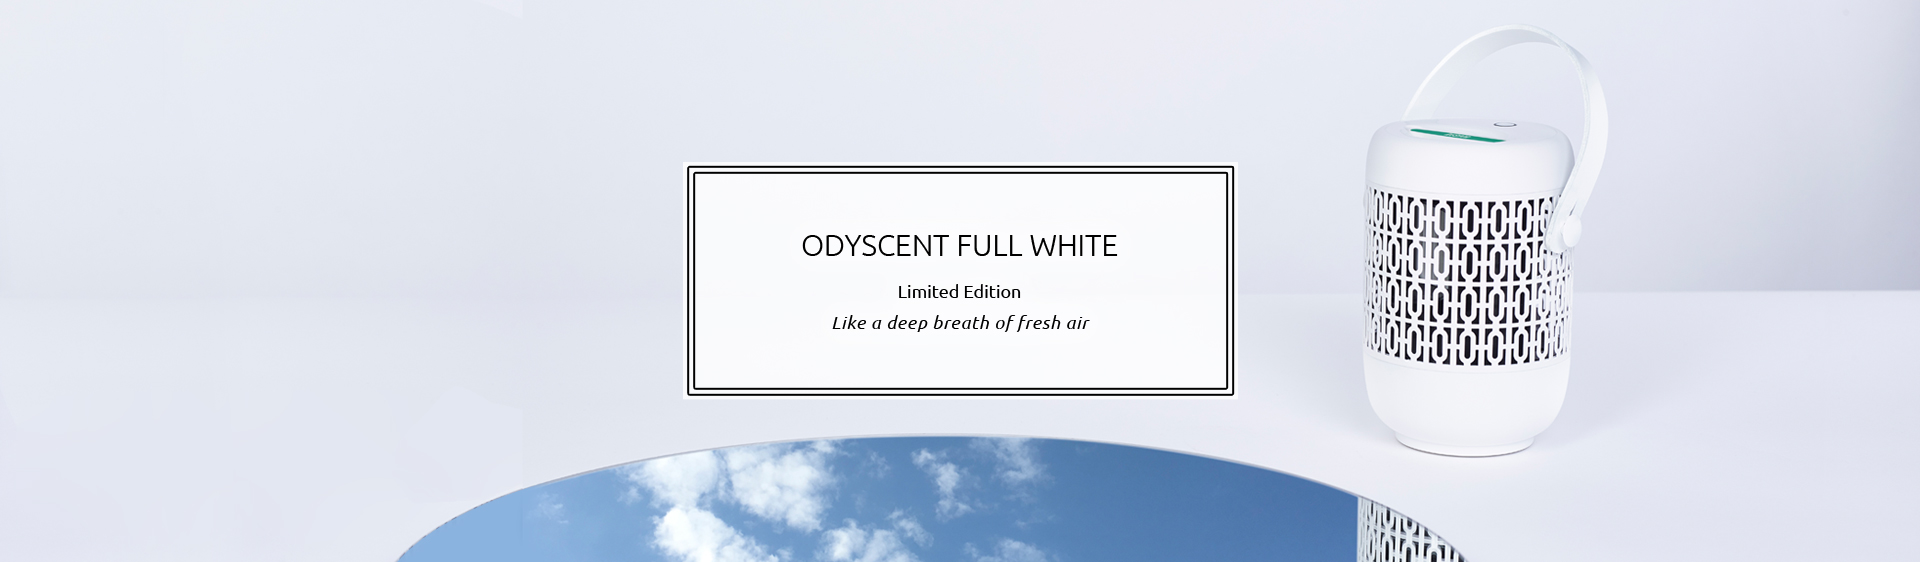 Odyscent Full White